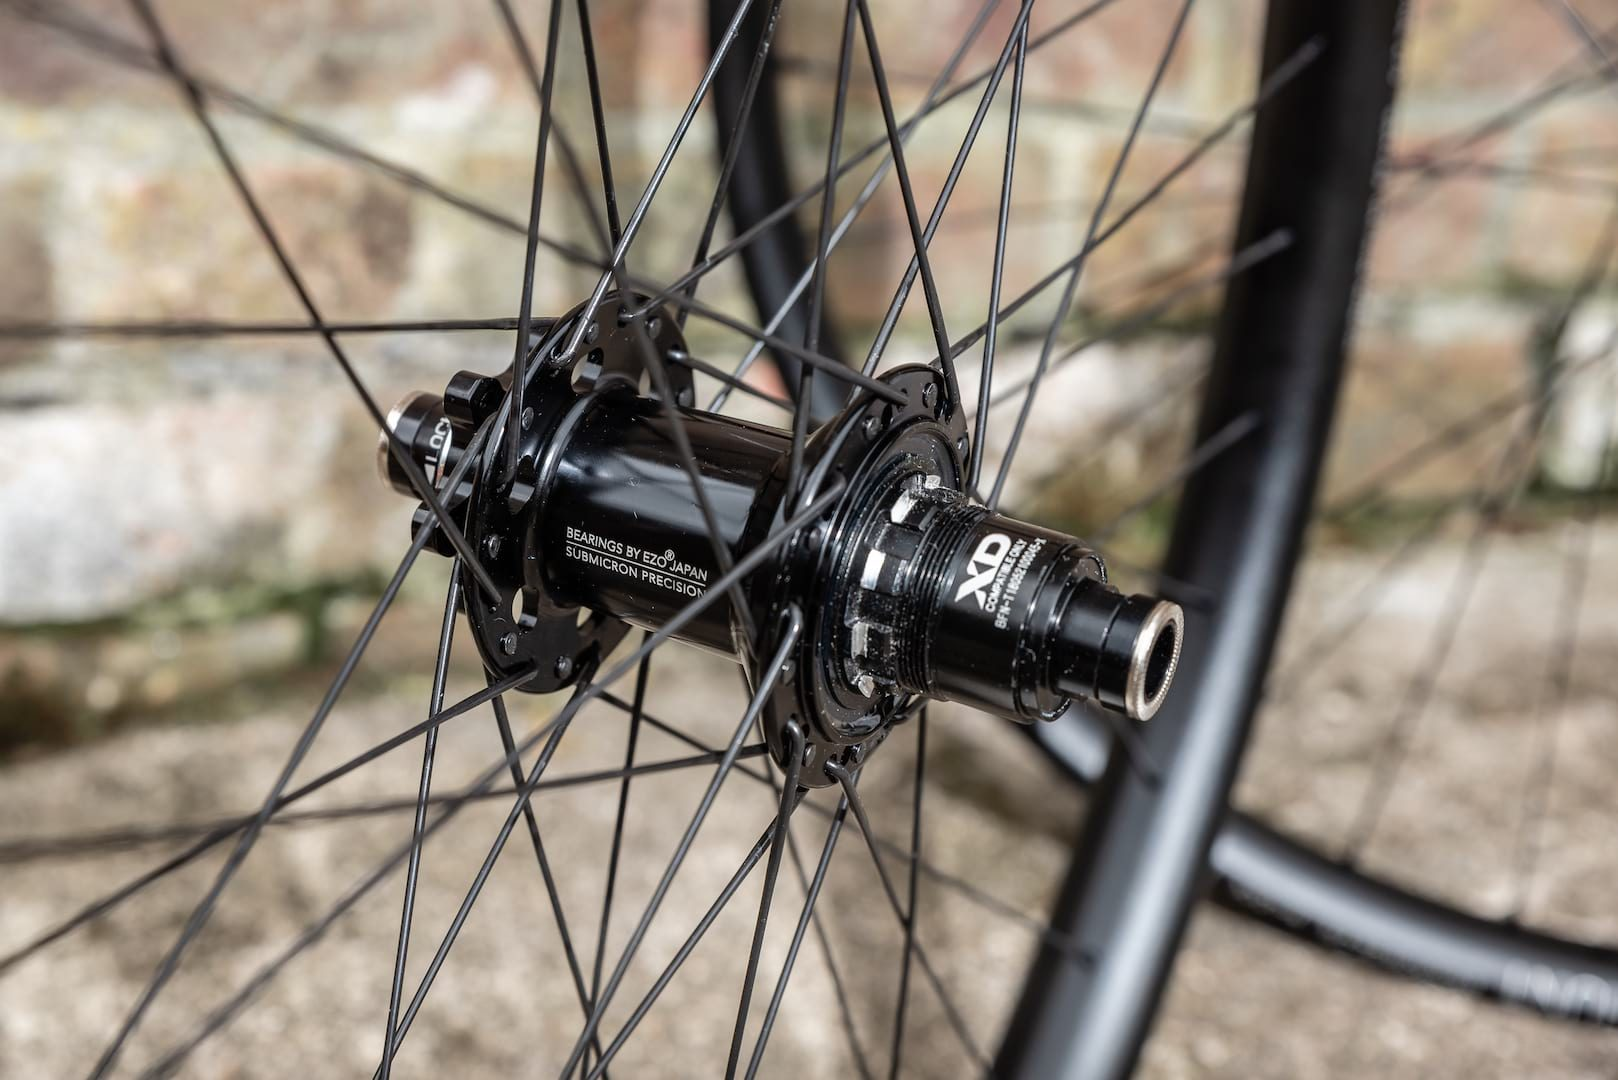 sram xd freehub body